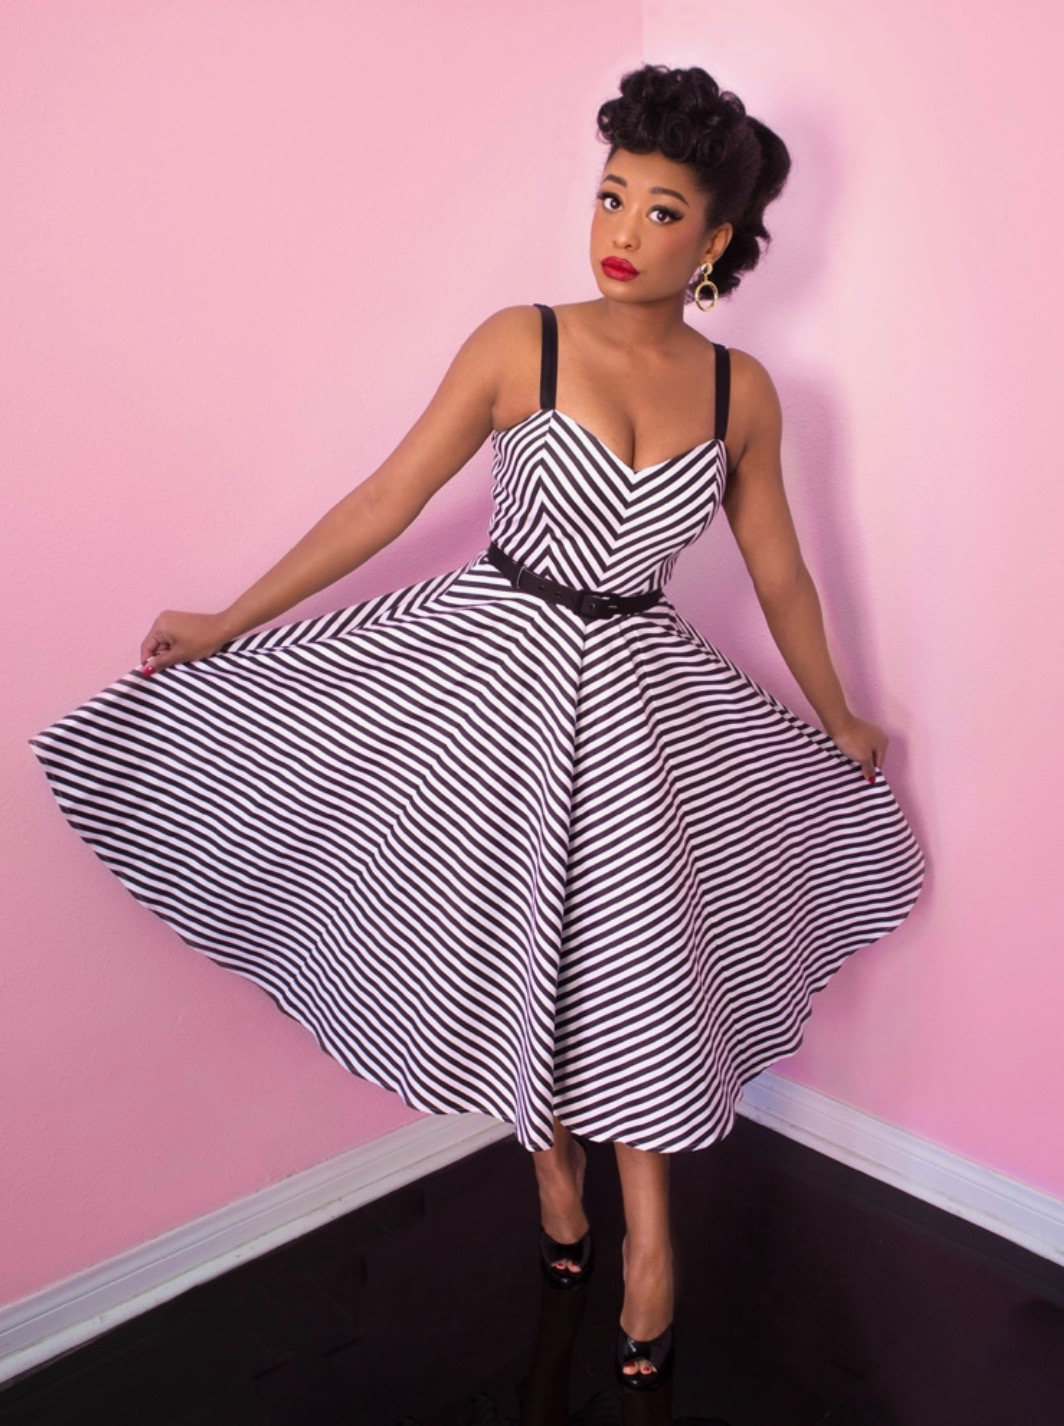 f19f6c5ab10b The Dollface Swing Dress in Black and White Stripe by Vixen at Ill-Gotten  Gains